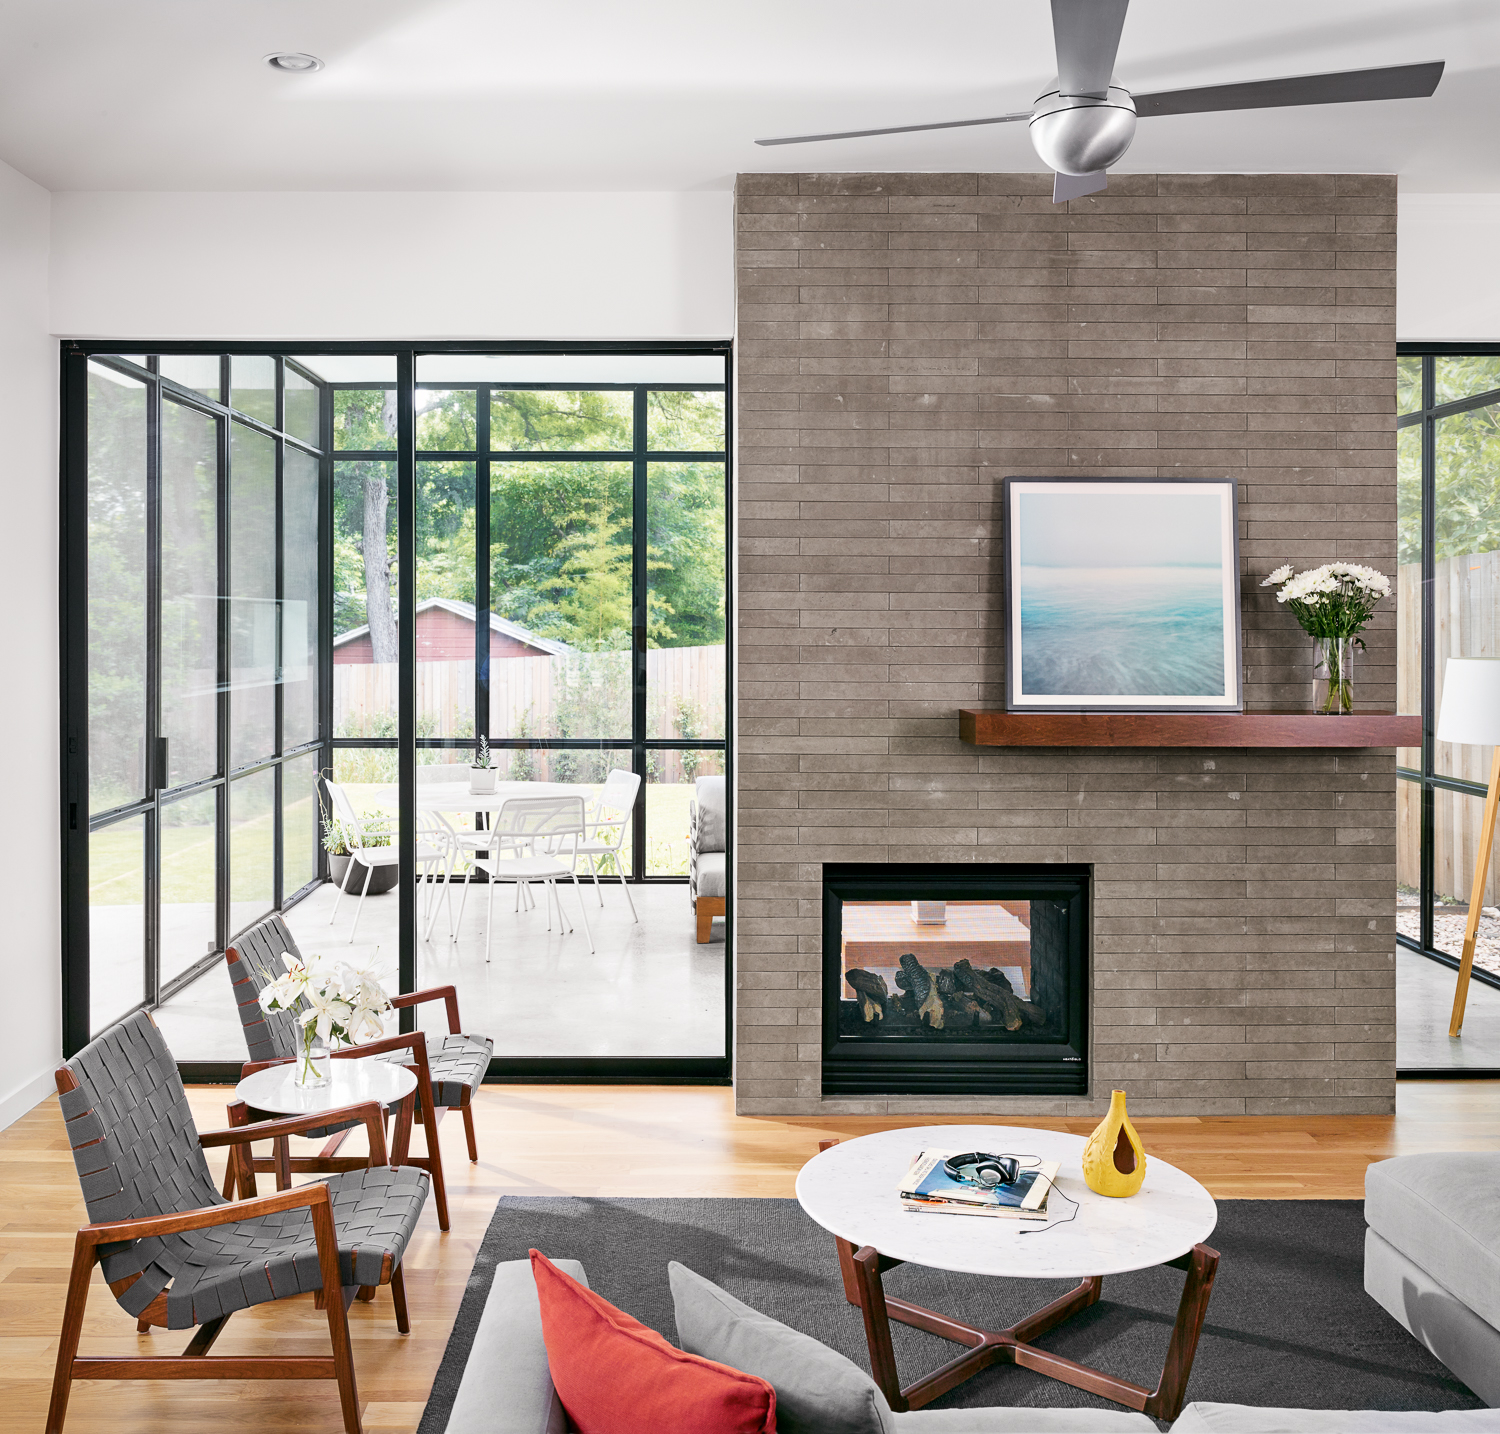 Modern living in a cozy atmosphere.